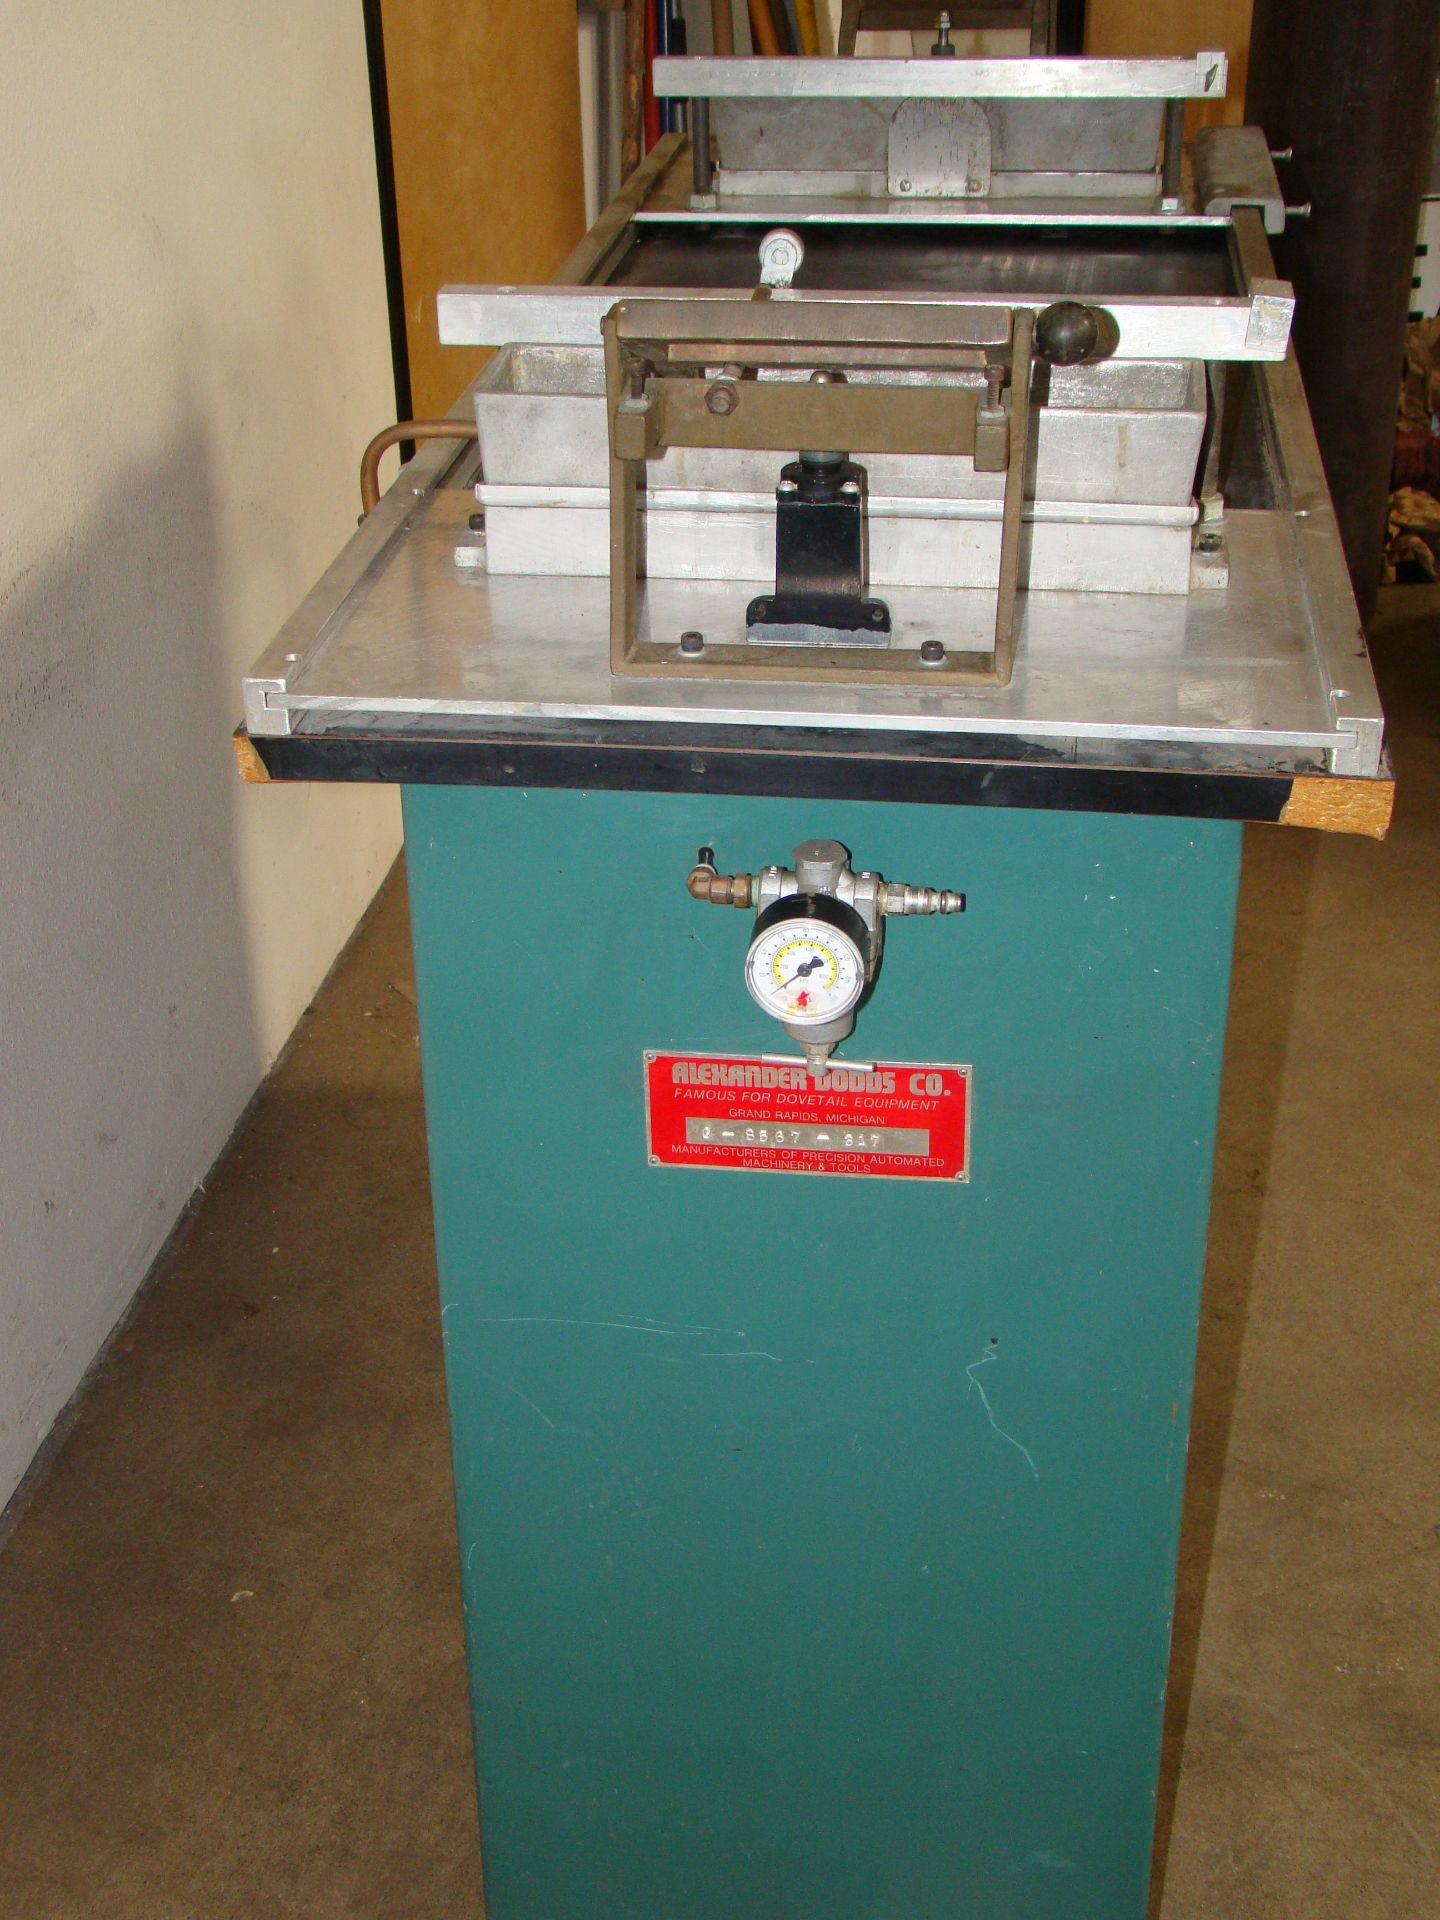 Lot 33 - Dodds Dovetail Gluer Model #G-8567-317